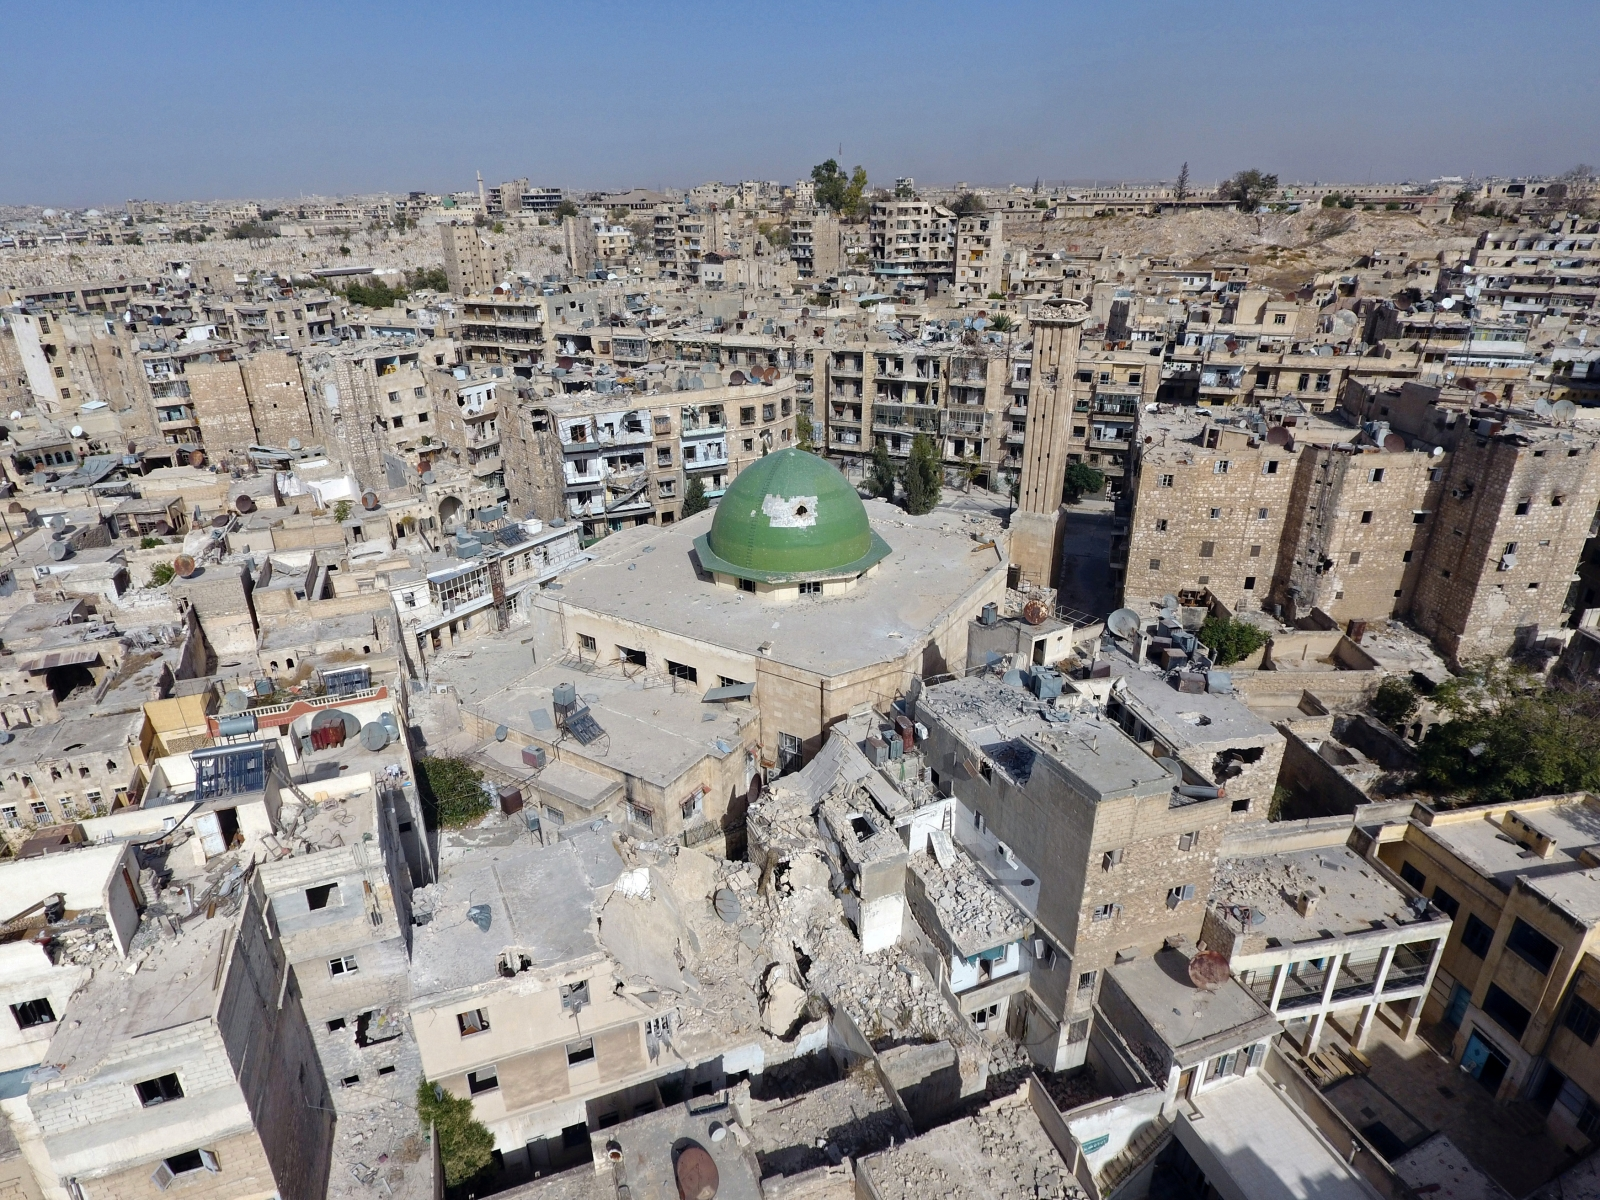 General view of Aleppo